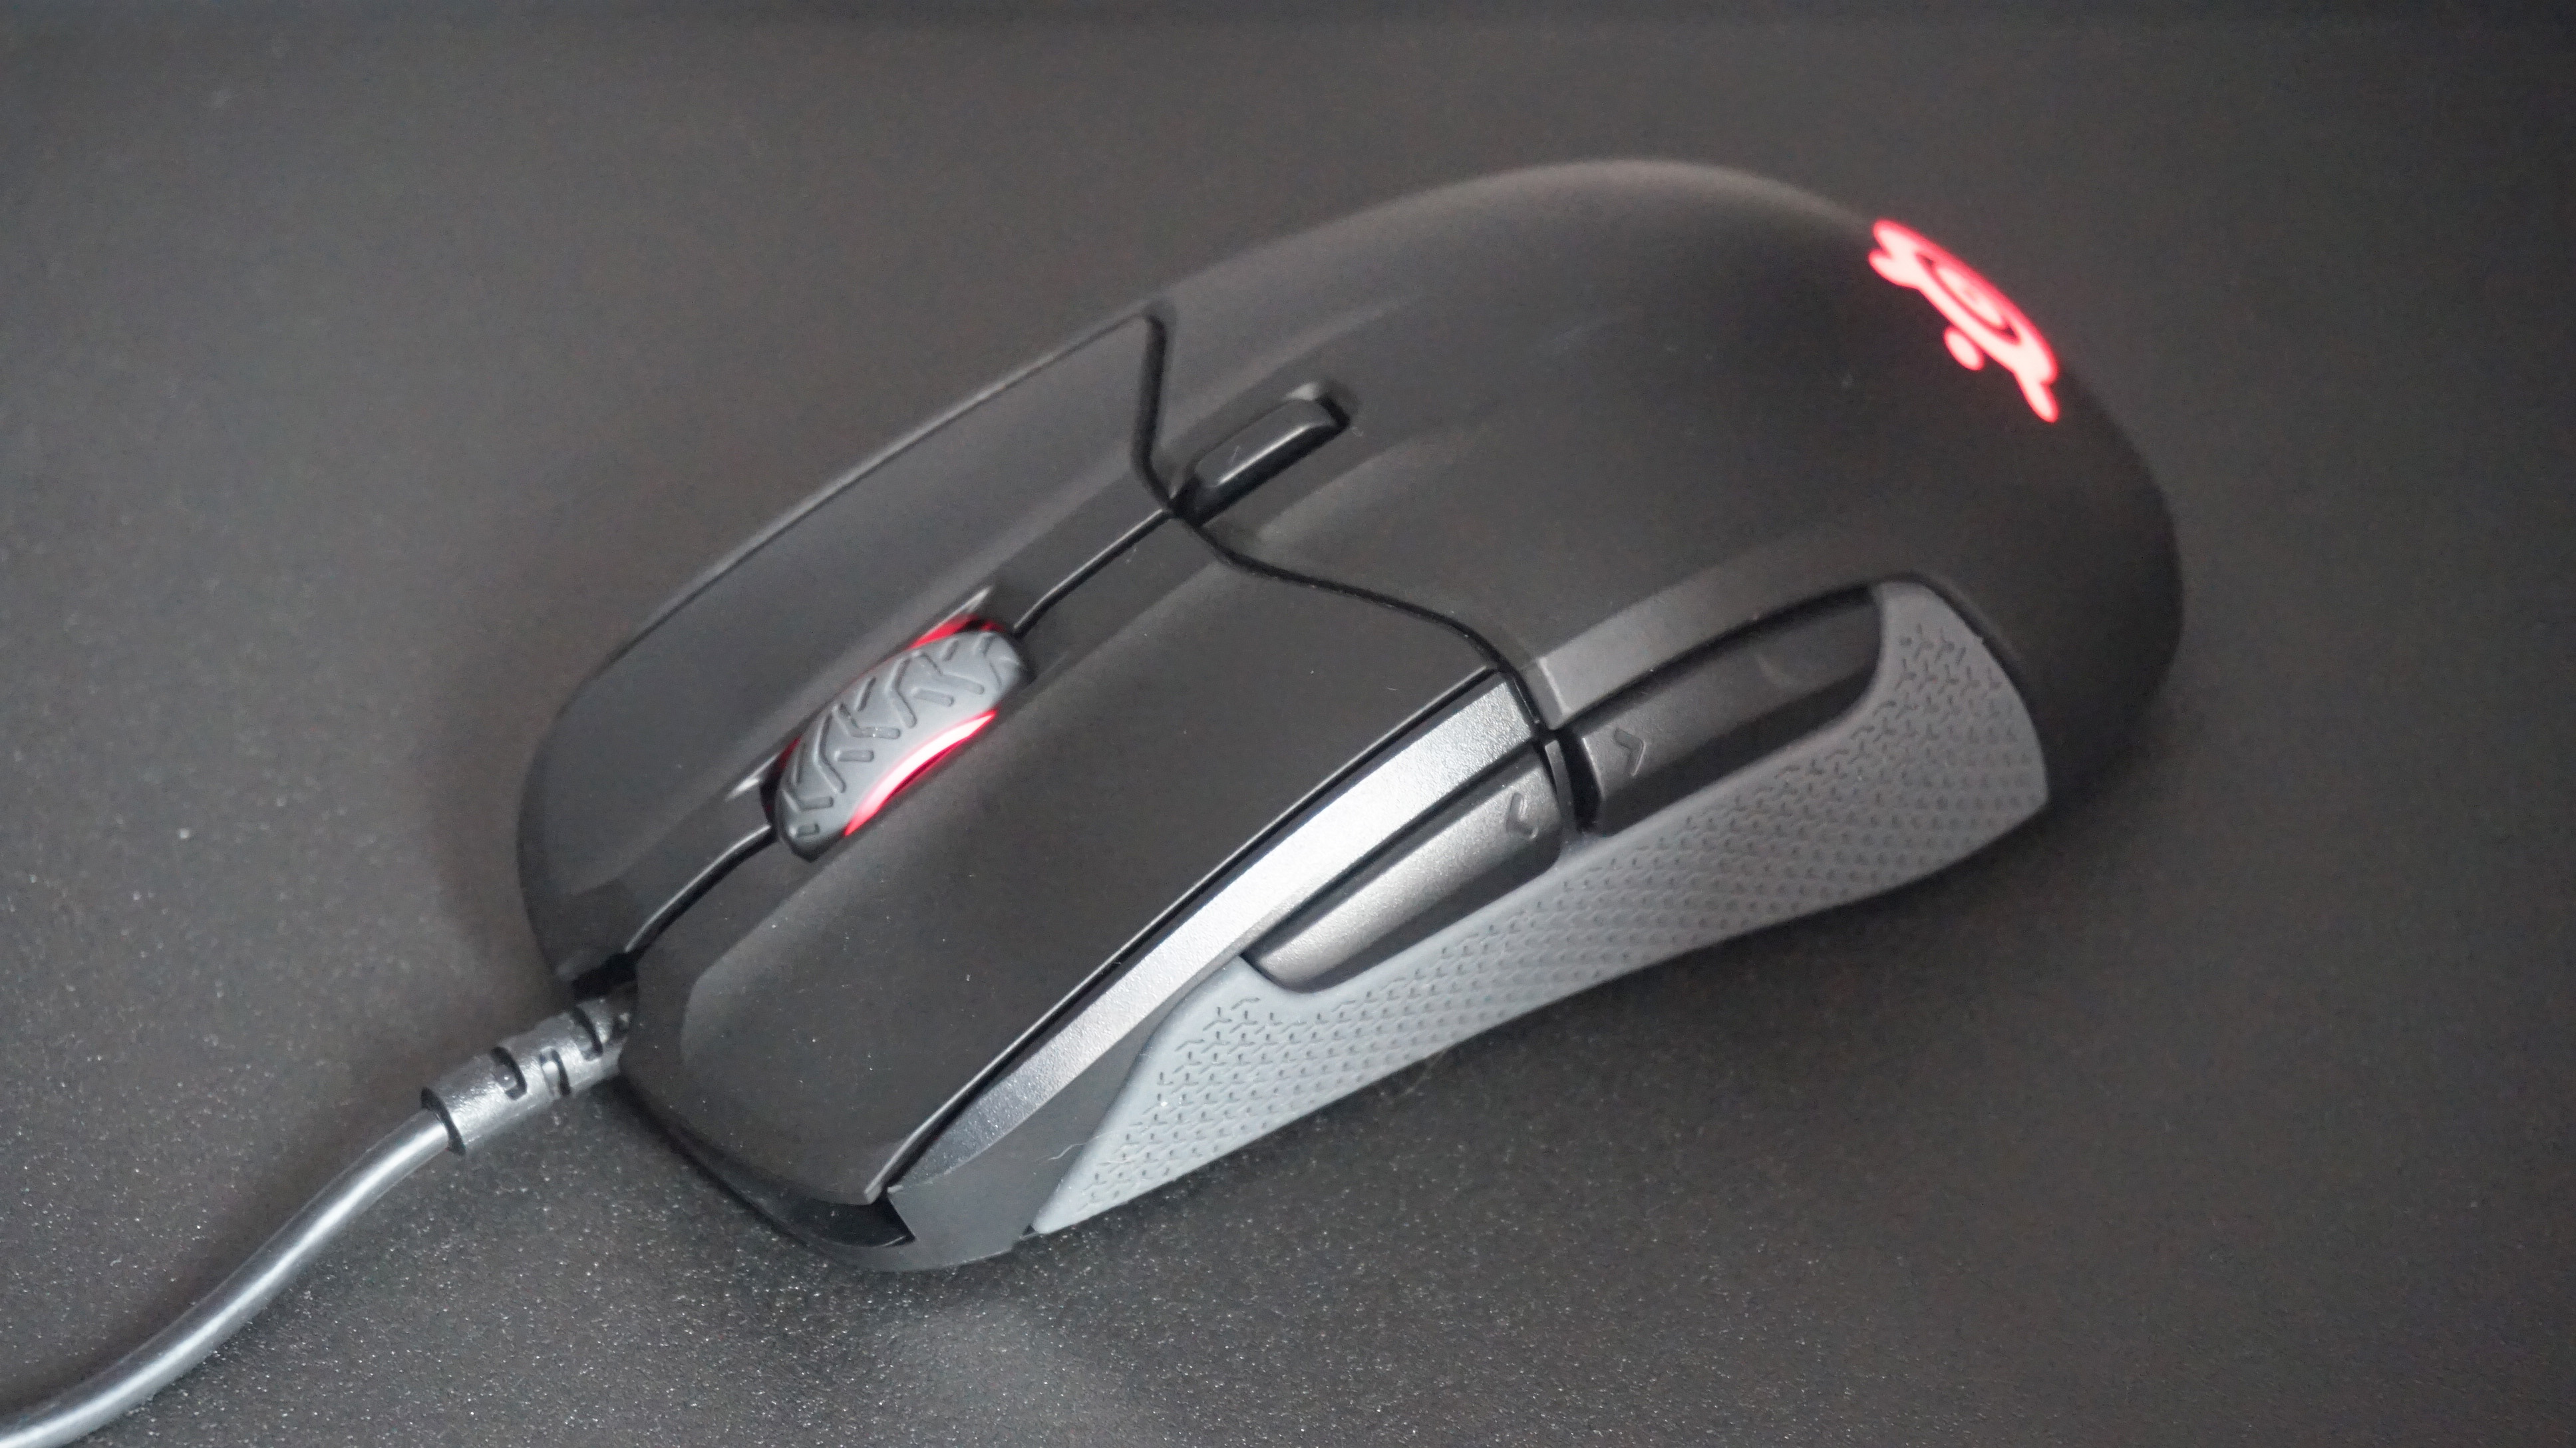 2d3f1b660de Steelseries Rival 310 review: Best budget gaming mouse under £50 ...